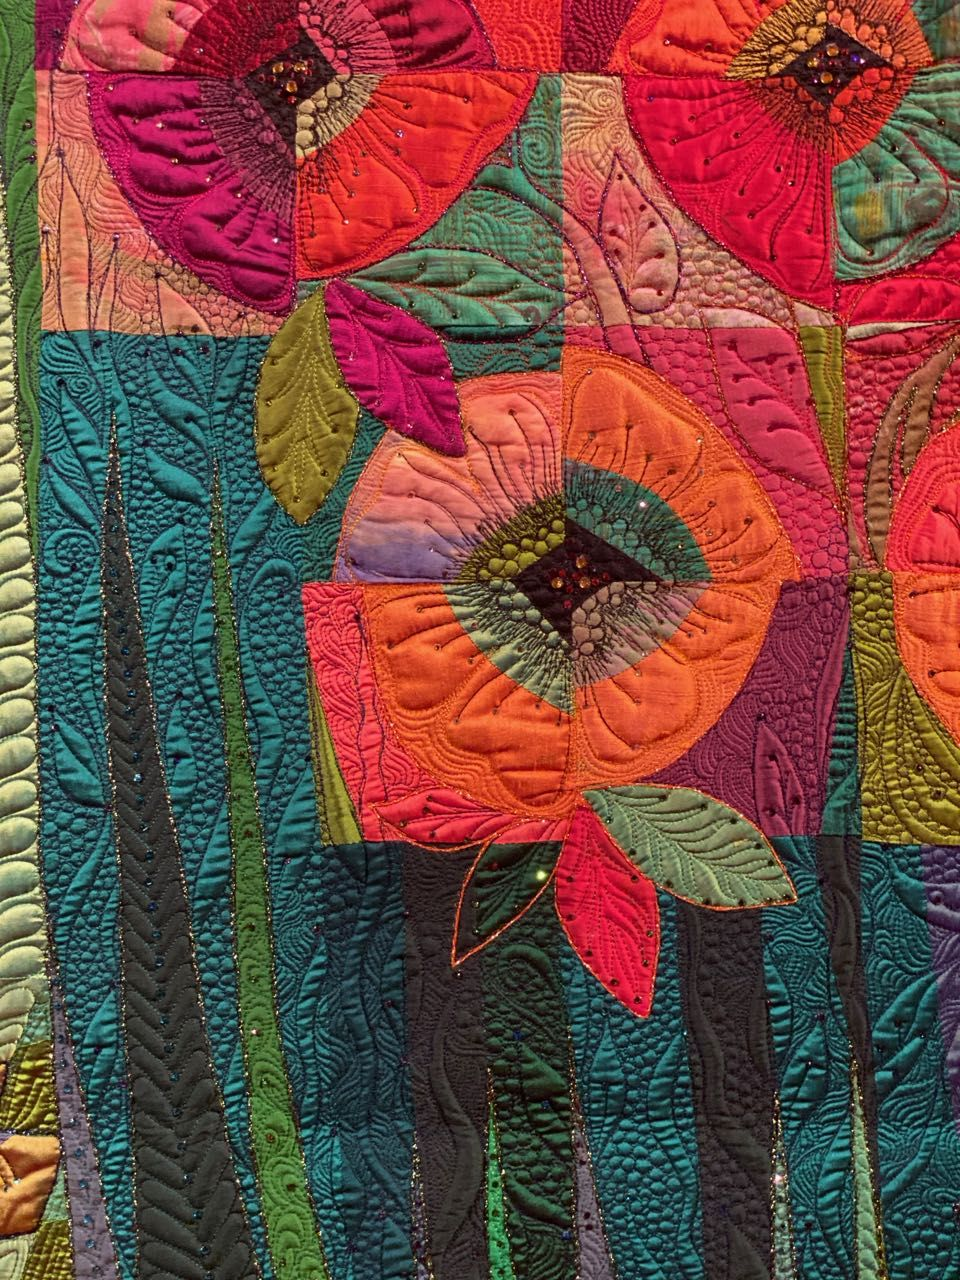 In Full Bloom a Quilt by Claudia Pfeil #modernquiltingdesigns